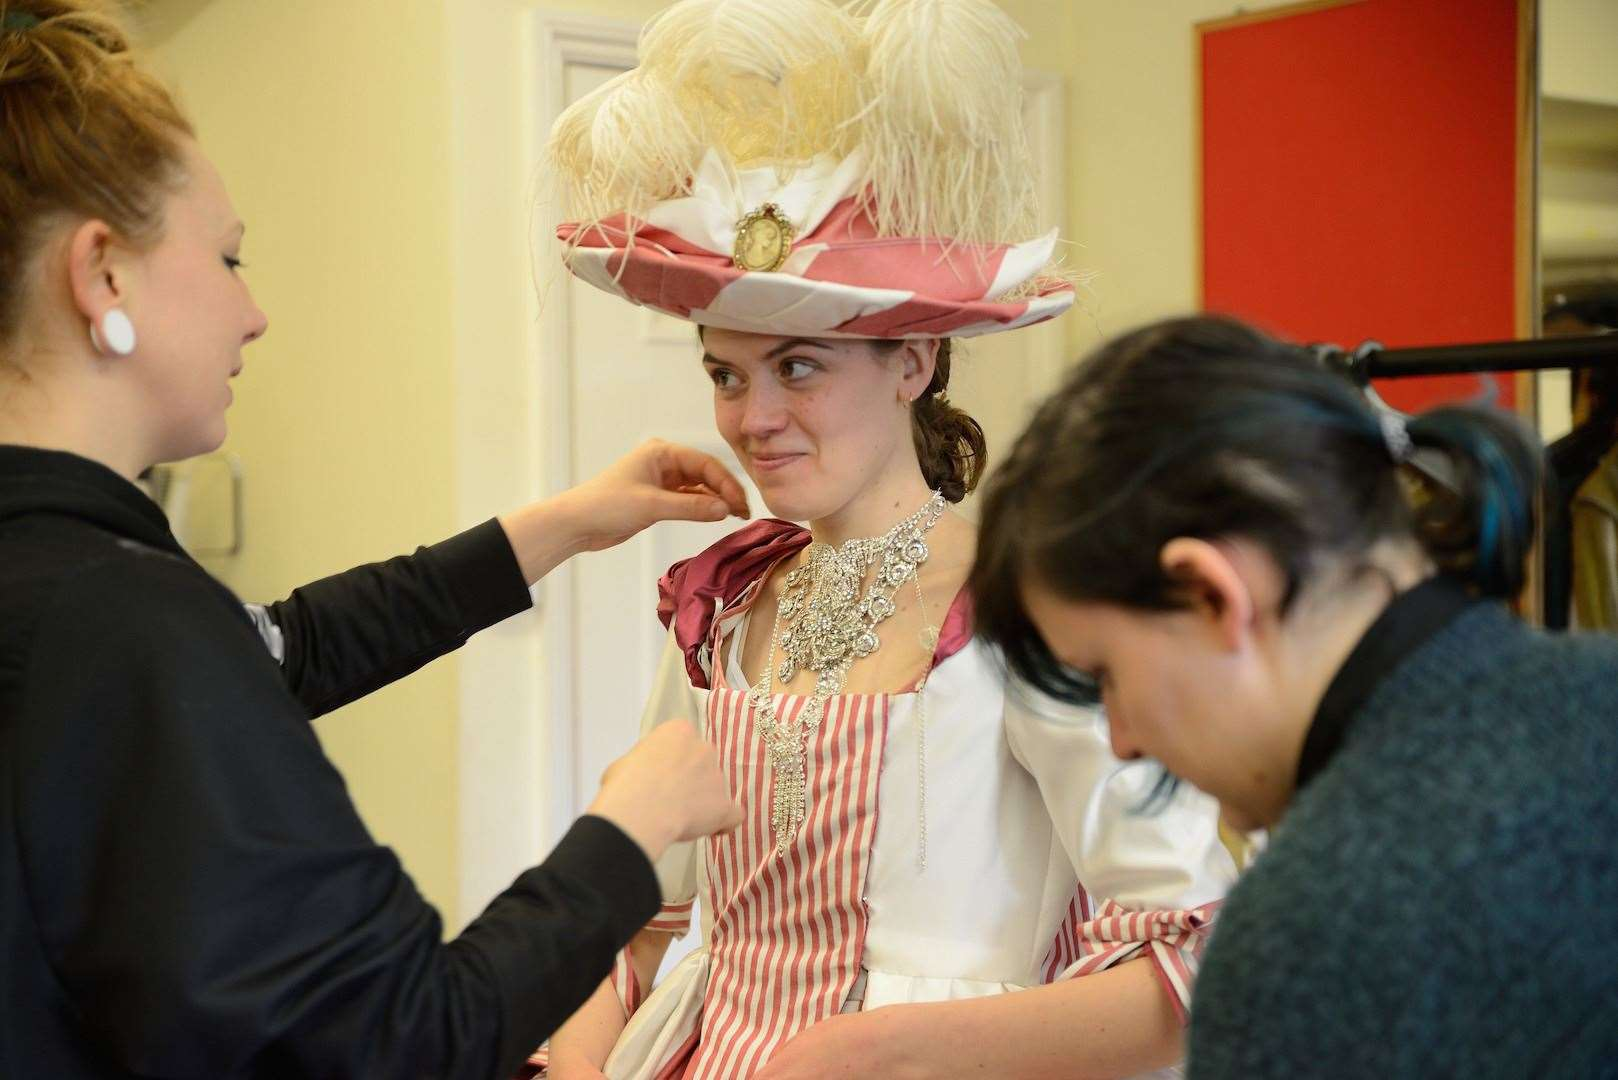 Costumes from Stamford Shakespeare Company are being sold to make way for the new season's outfits